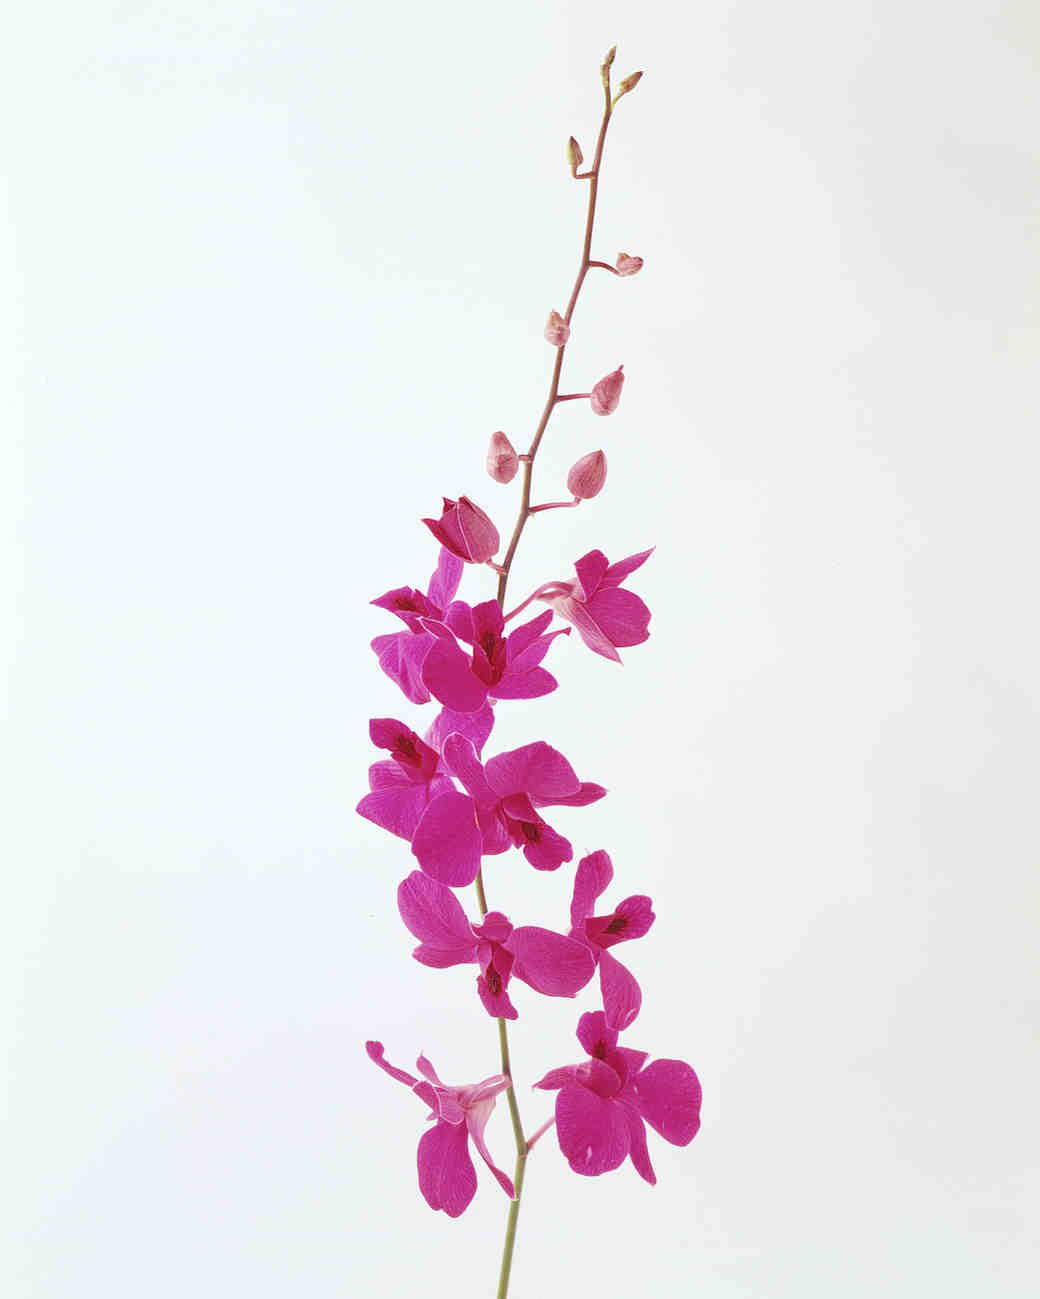 flower-glossary-demor-orchid-pink-a98432-0415.jpg